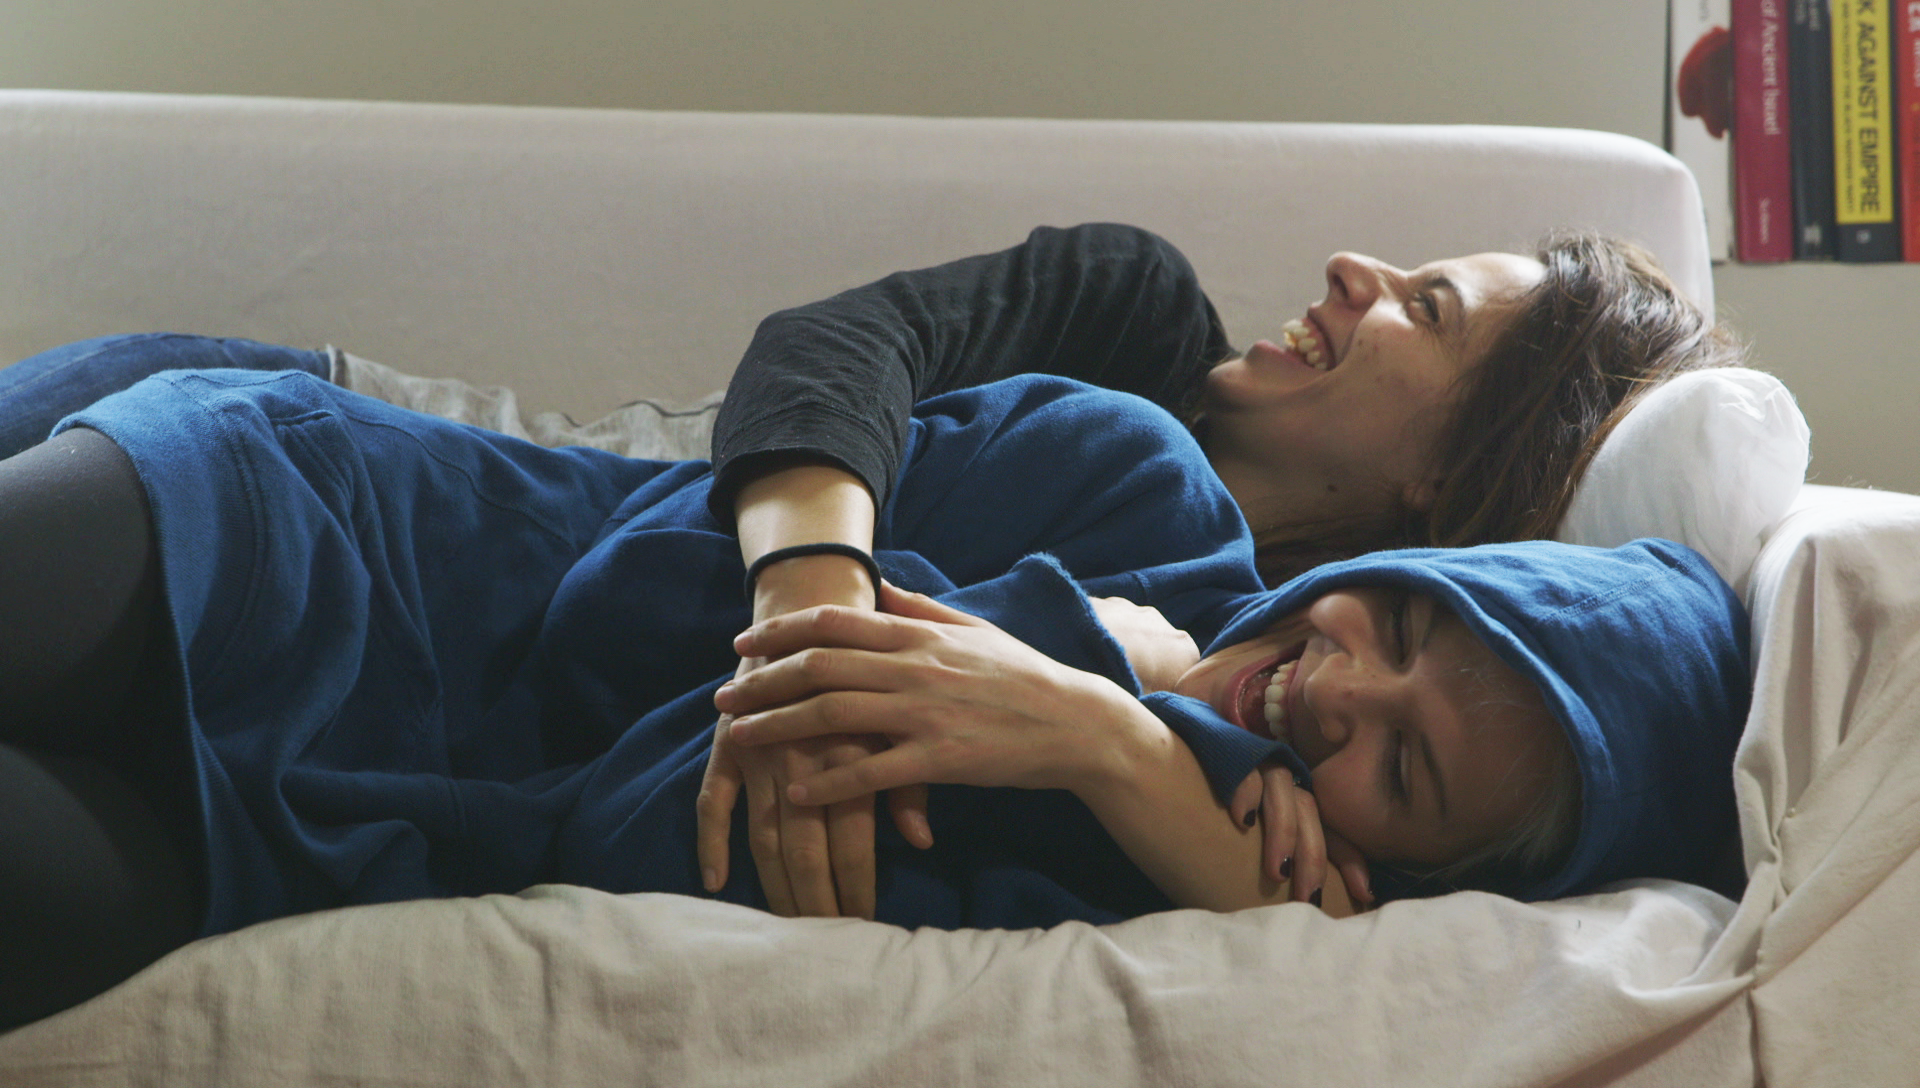 The Pros of Professional Cuddling and How to Get Involved